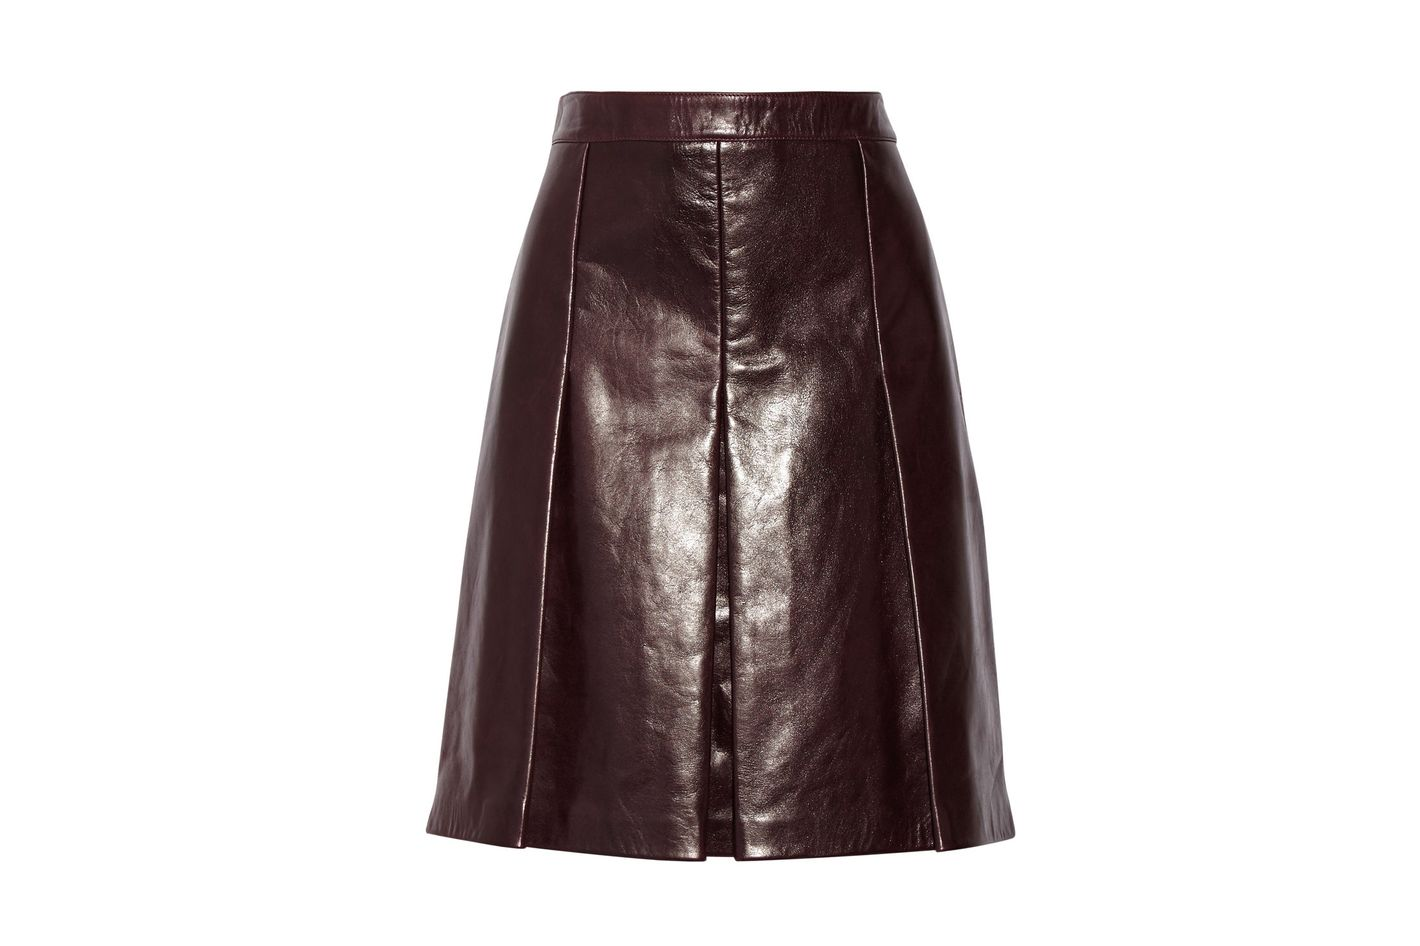 Belstaff Pleated Leather Skirt